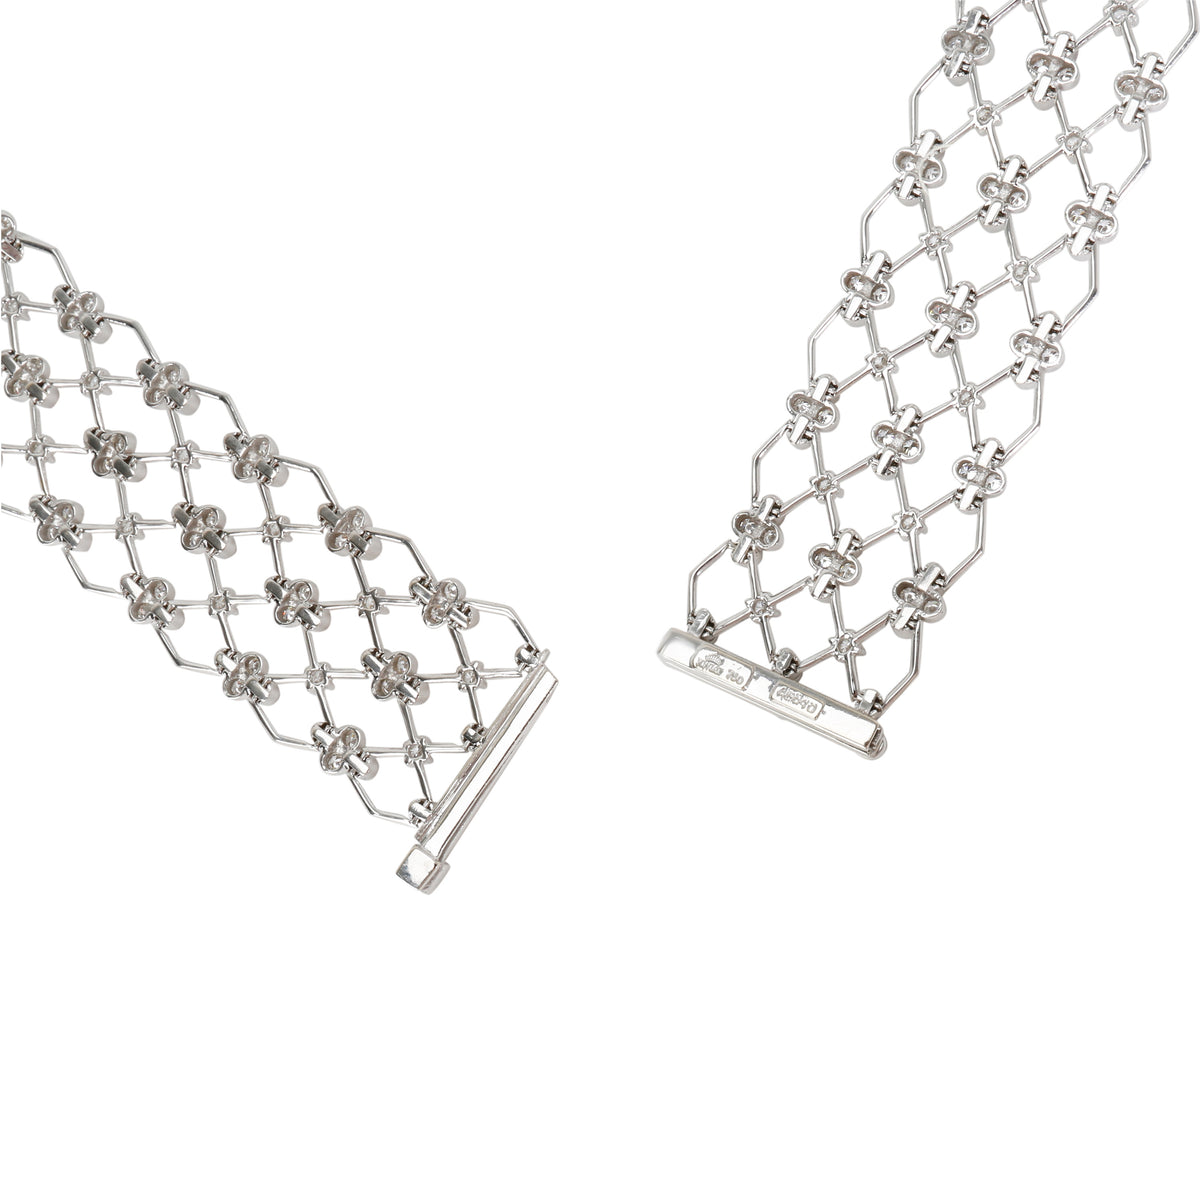 Kwiat Jasmine Diamond Necklace in 18KT White Gold 17.44 CTW